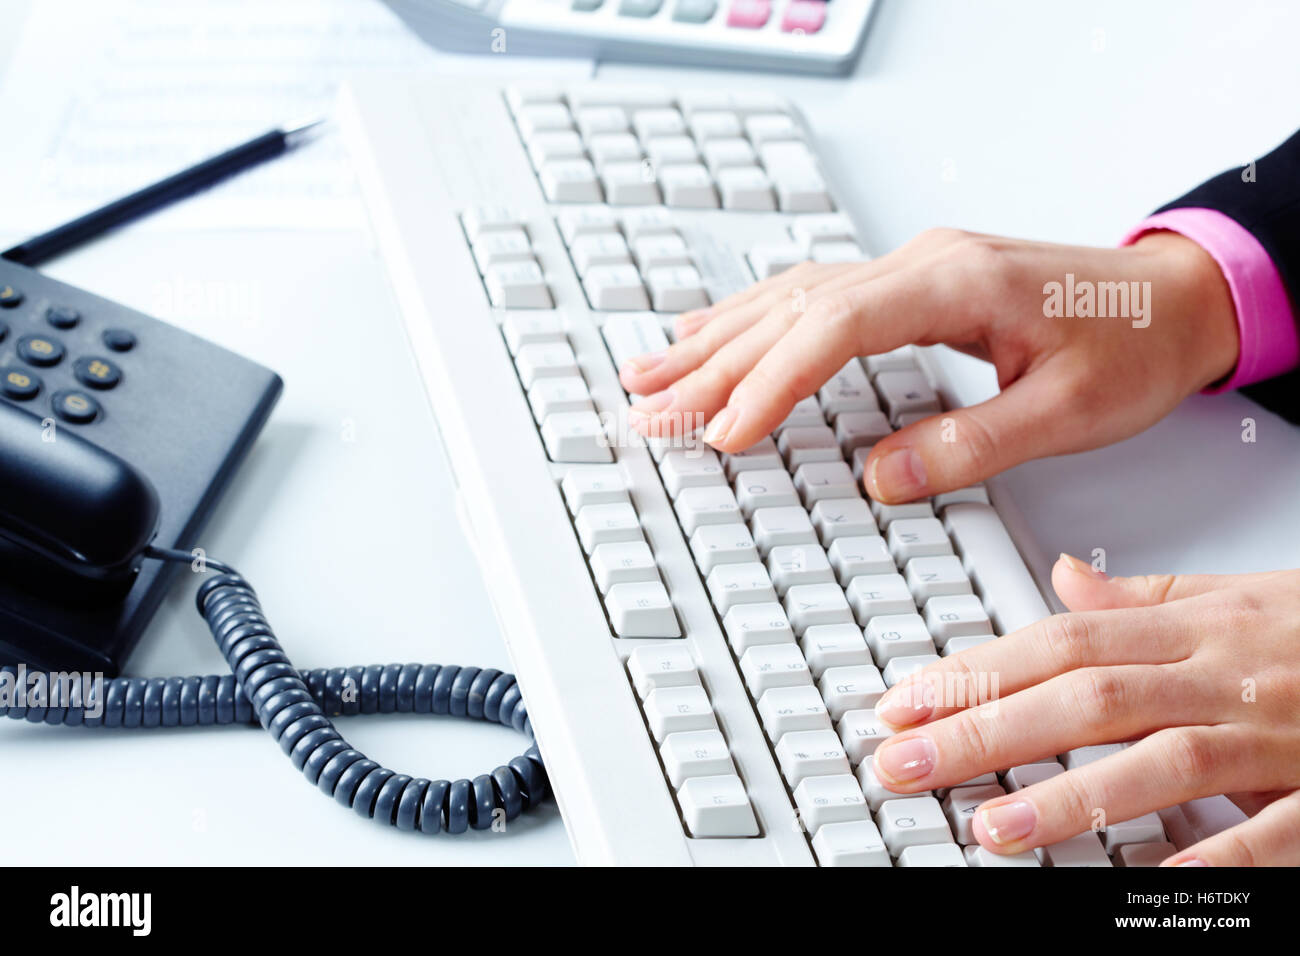 human hand computer keyboard symbol stock photos human hand computer keyboard symbol stock. Black Bedroom Furniture Sets. Home Design Ideas